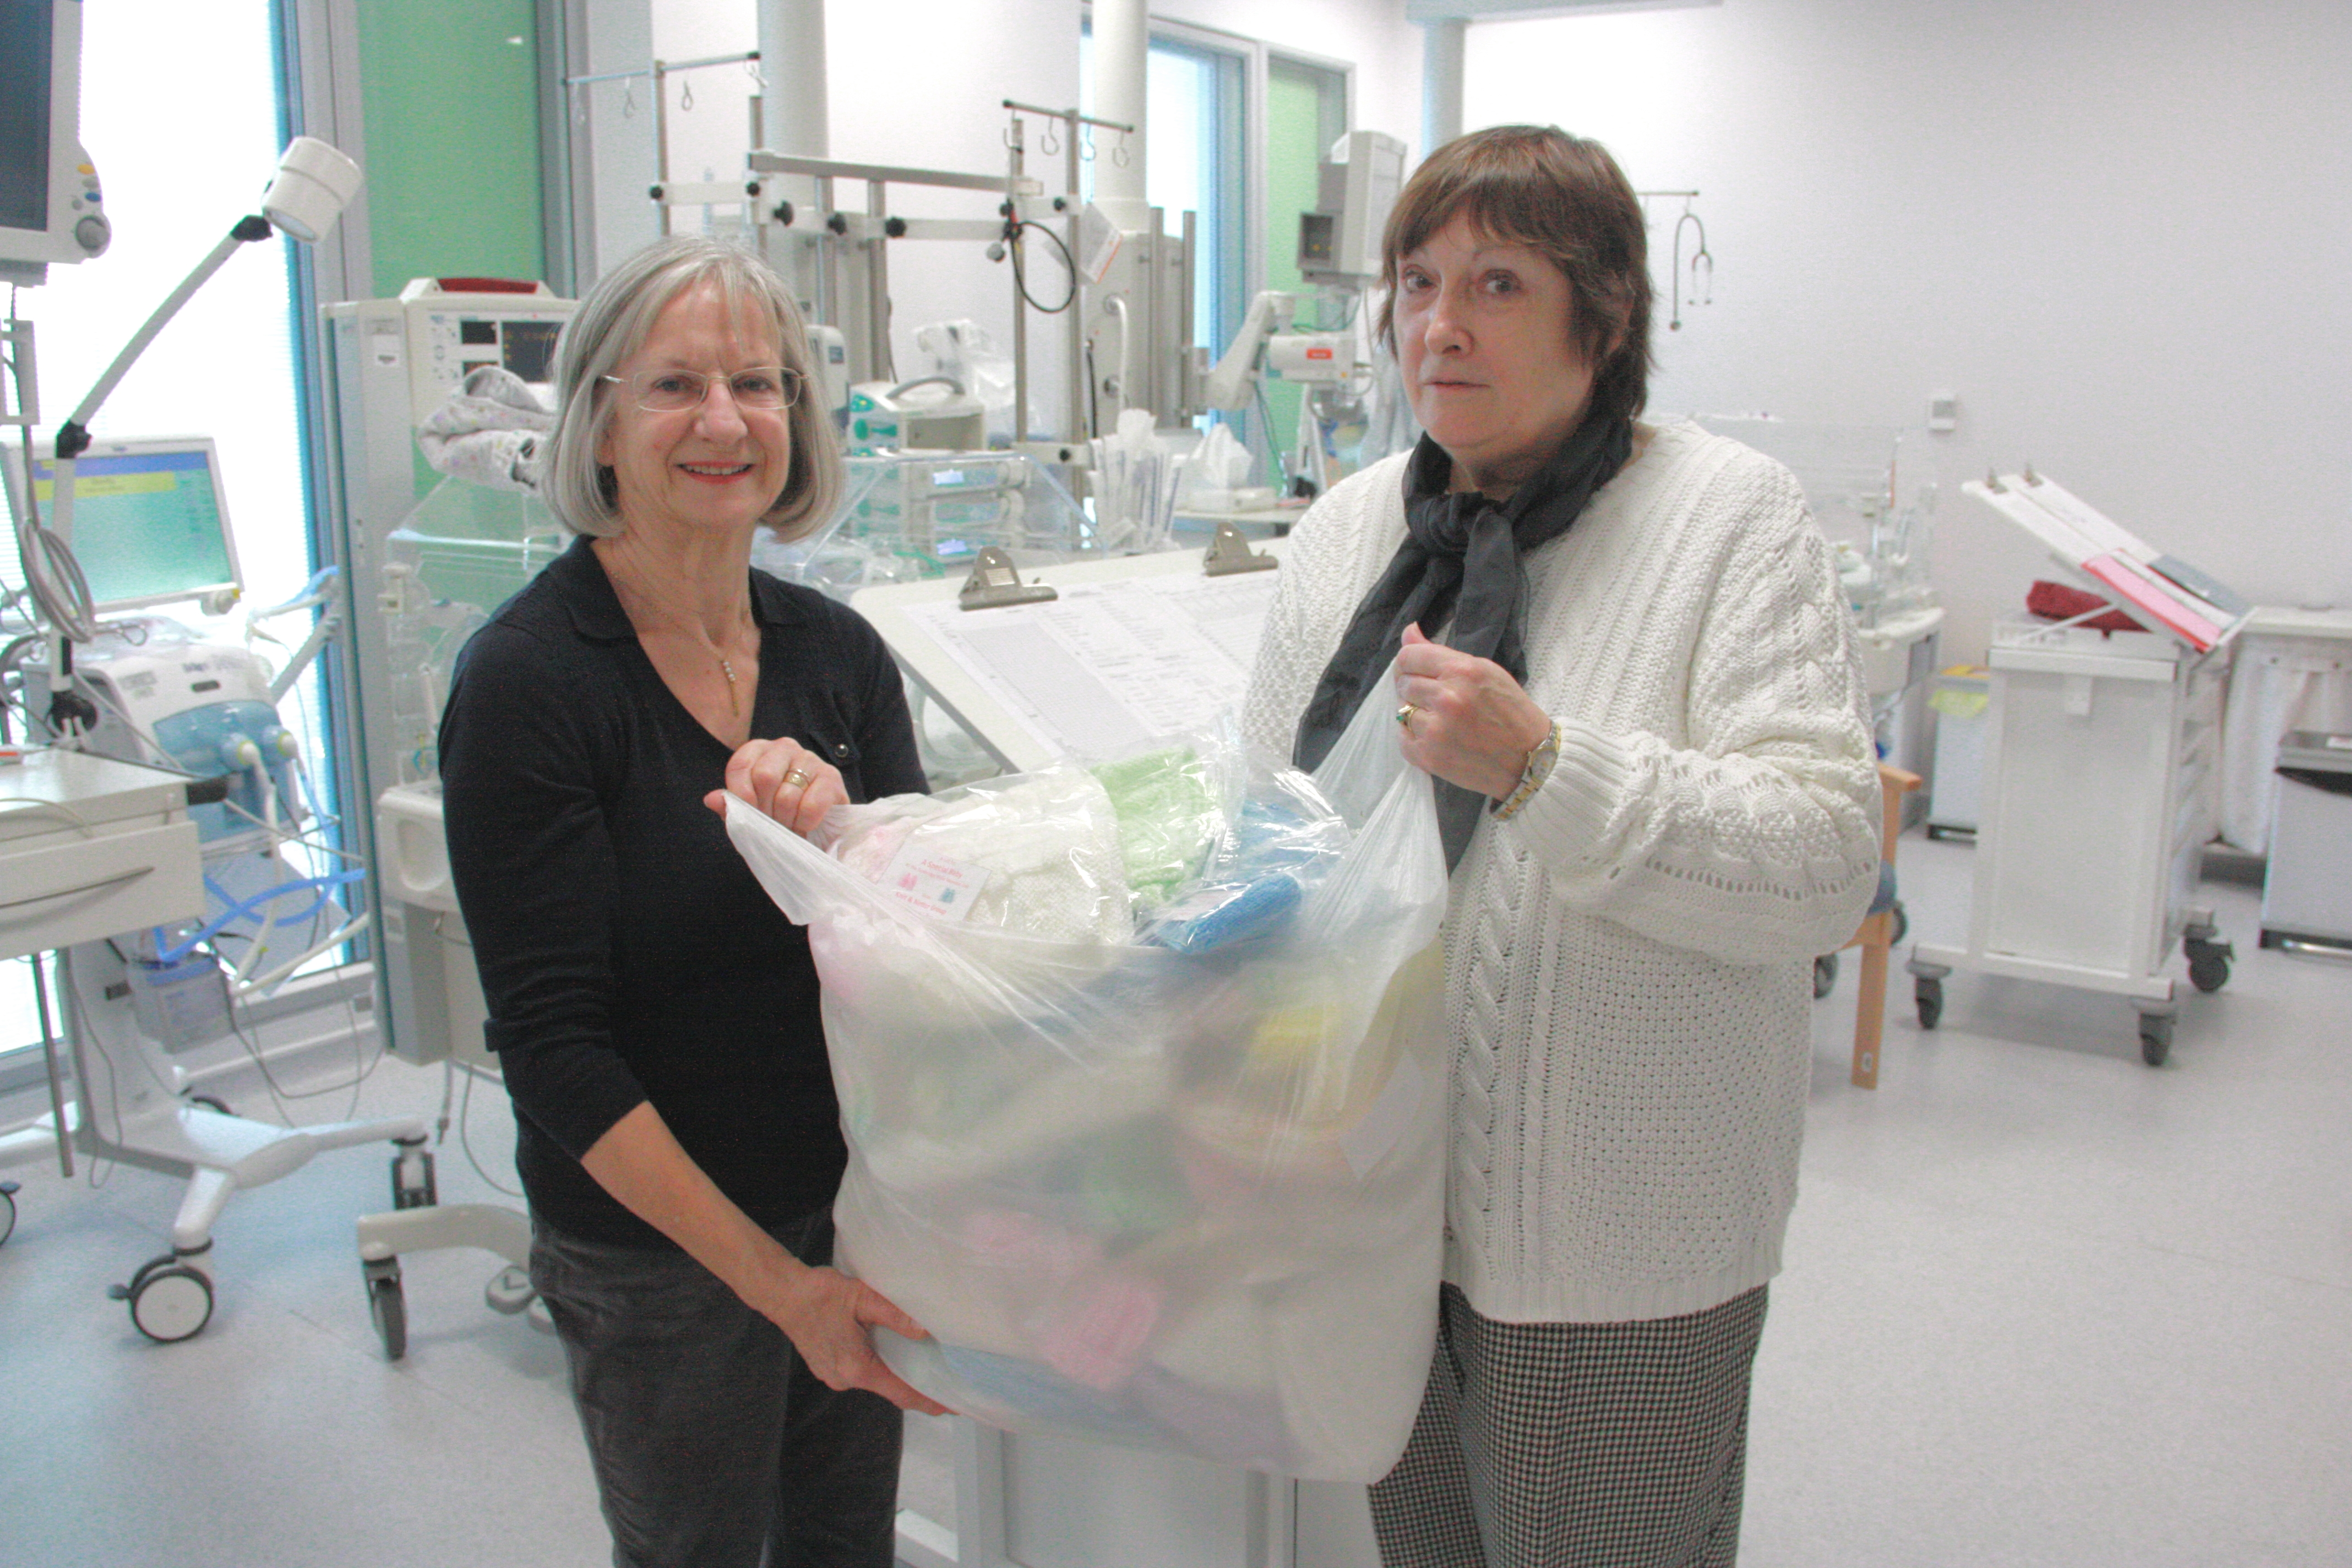 Nifty knitters get purling for premature babies